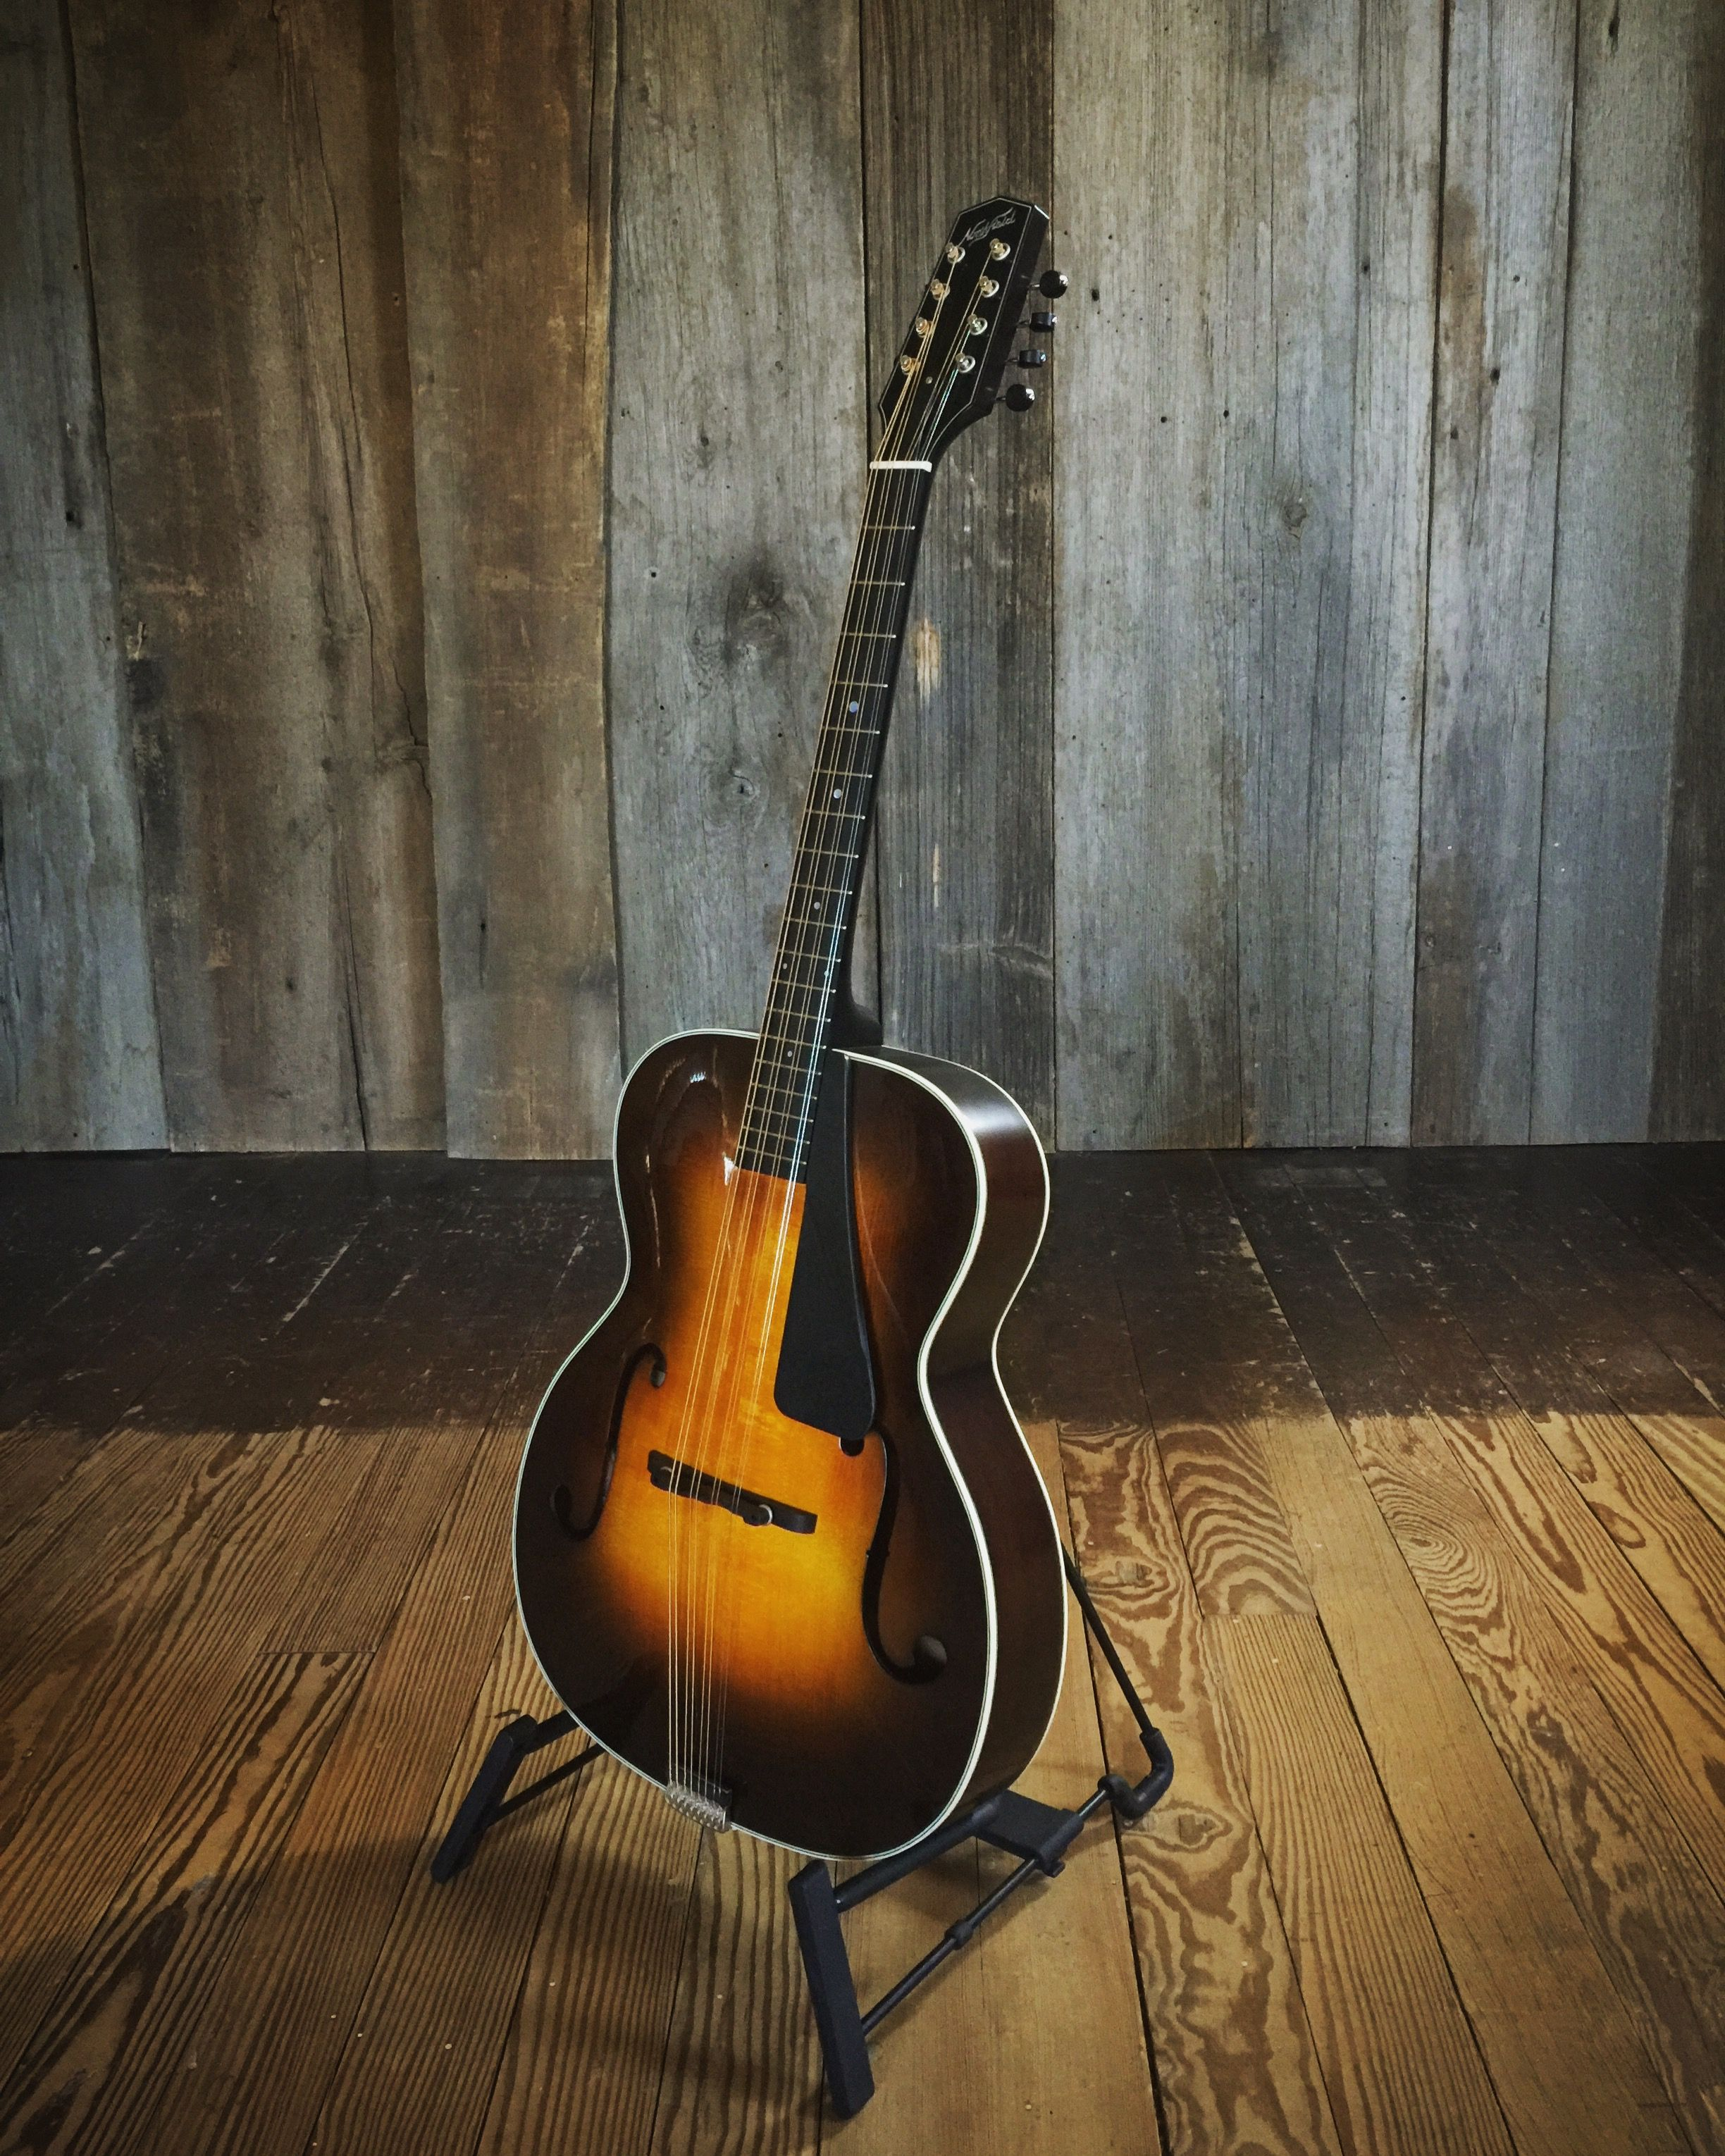 Northfield Workshop ATO-2 Maple Archtop Octave Mandolin with